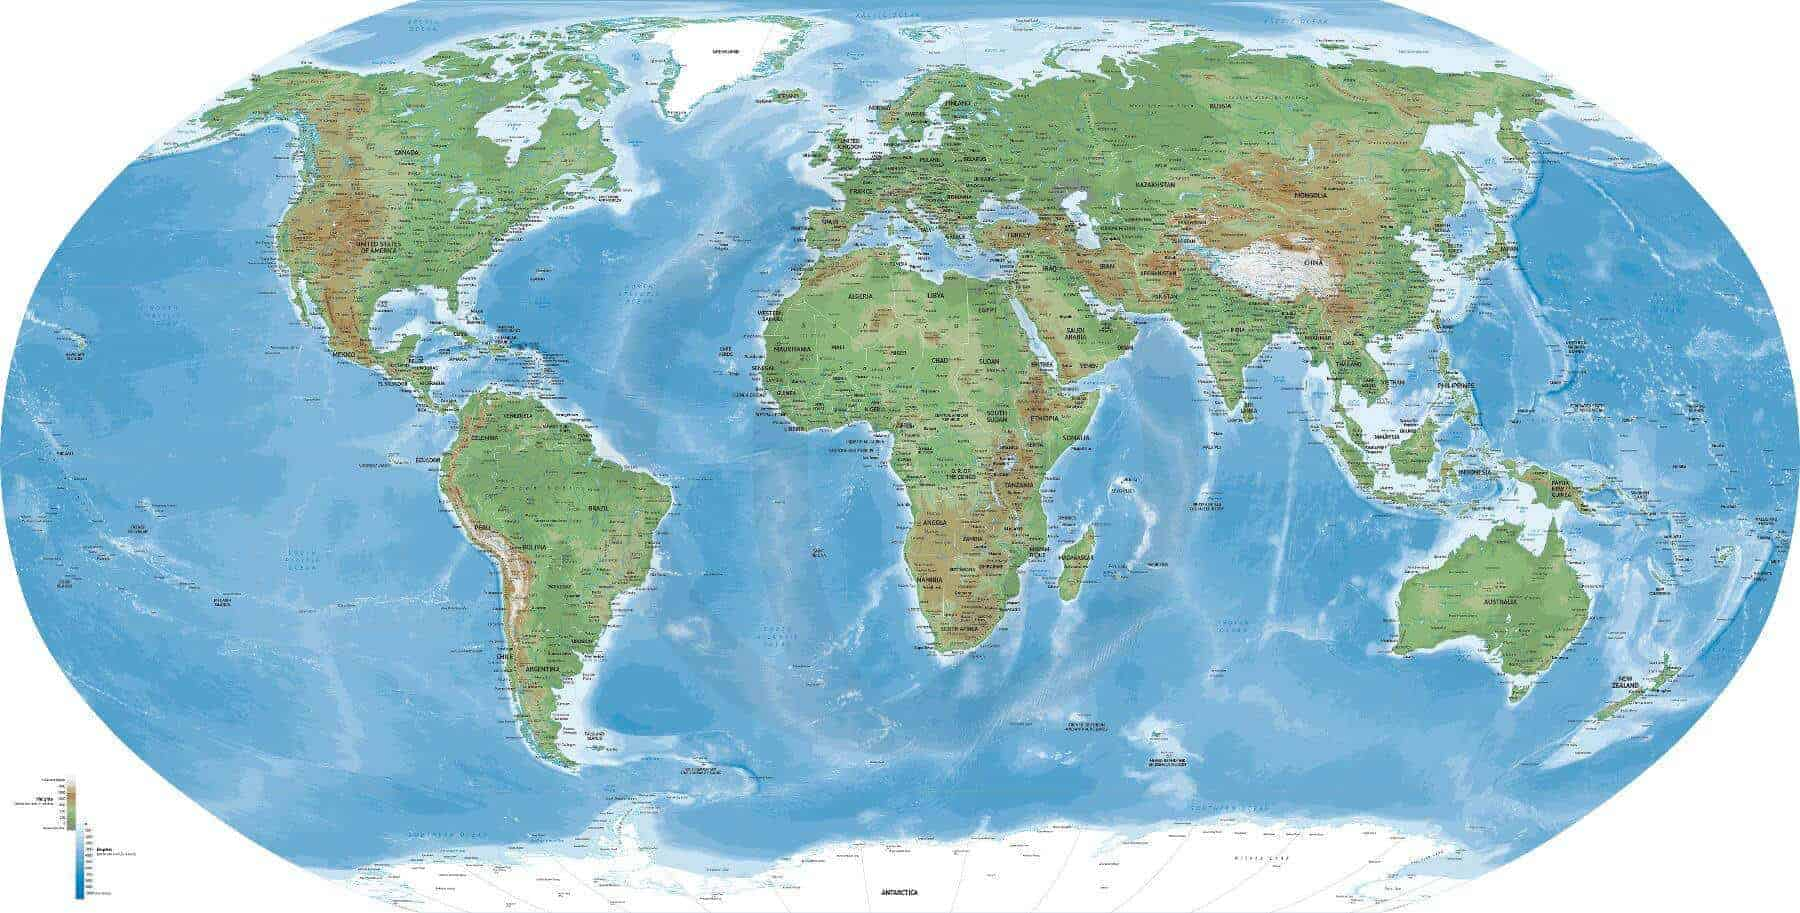 Map Of The World Detailed.Naturalist Map Of The World High Detail Robinson Europe Africa Centered